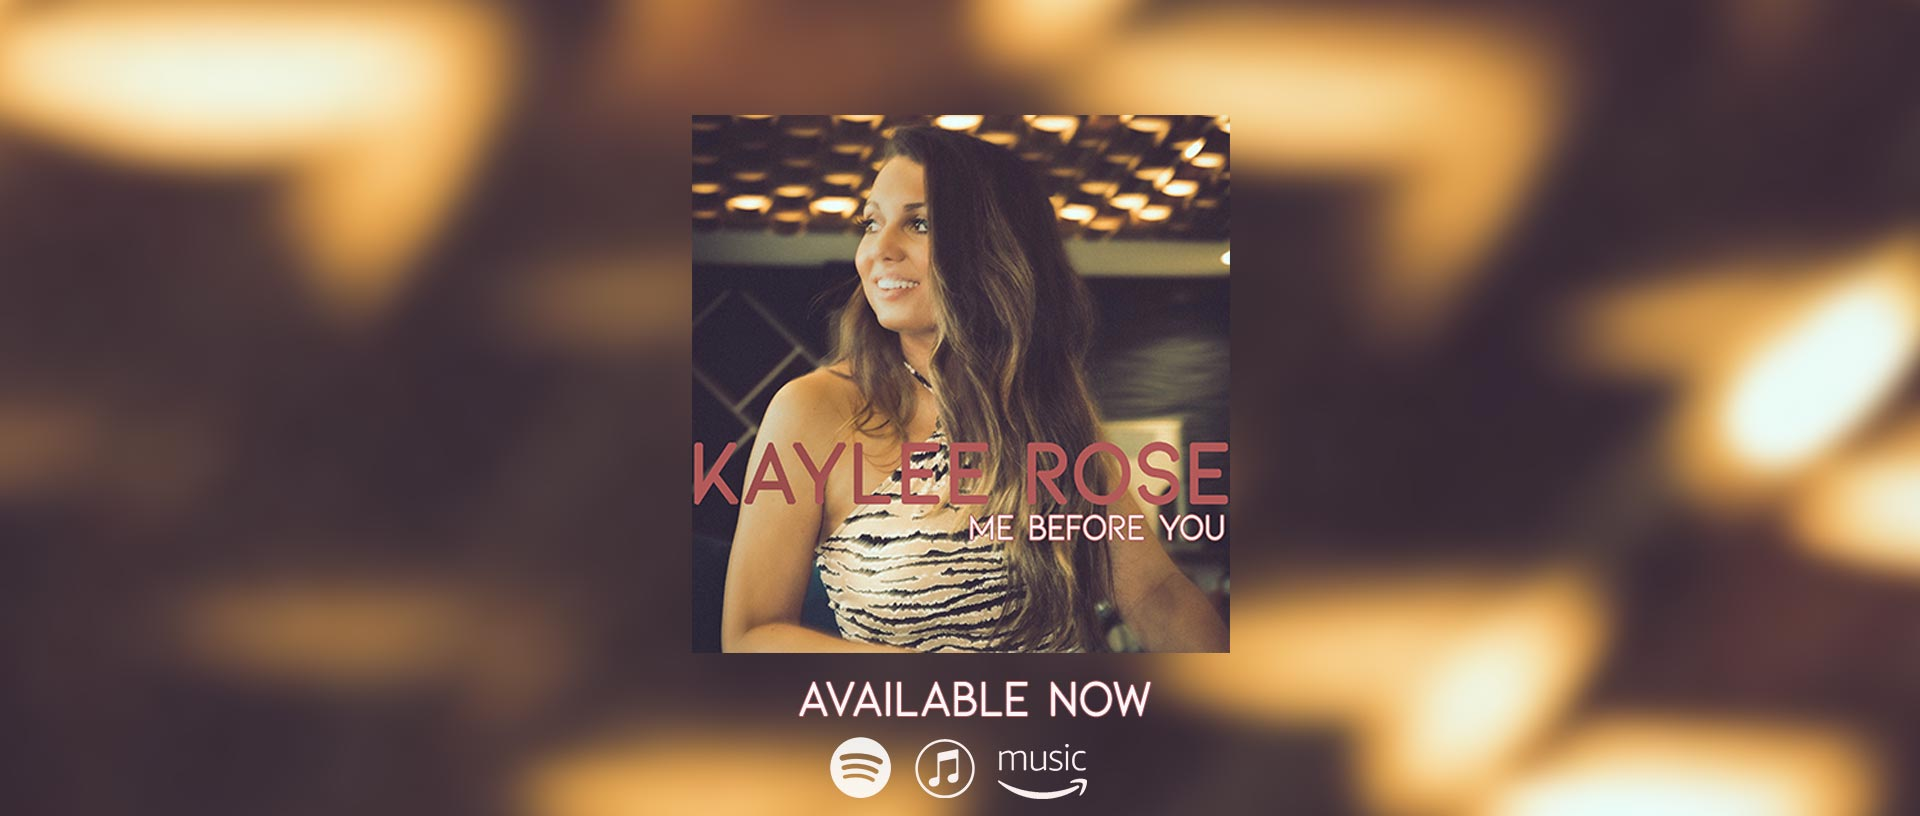 Kaylee Rose Me Before You Web Banner.jpg